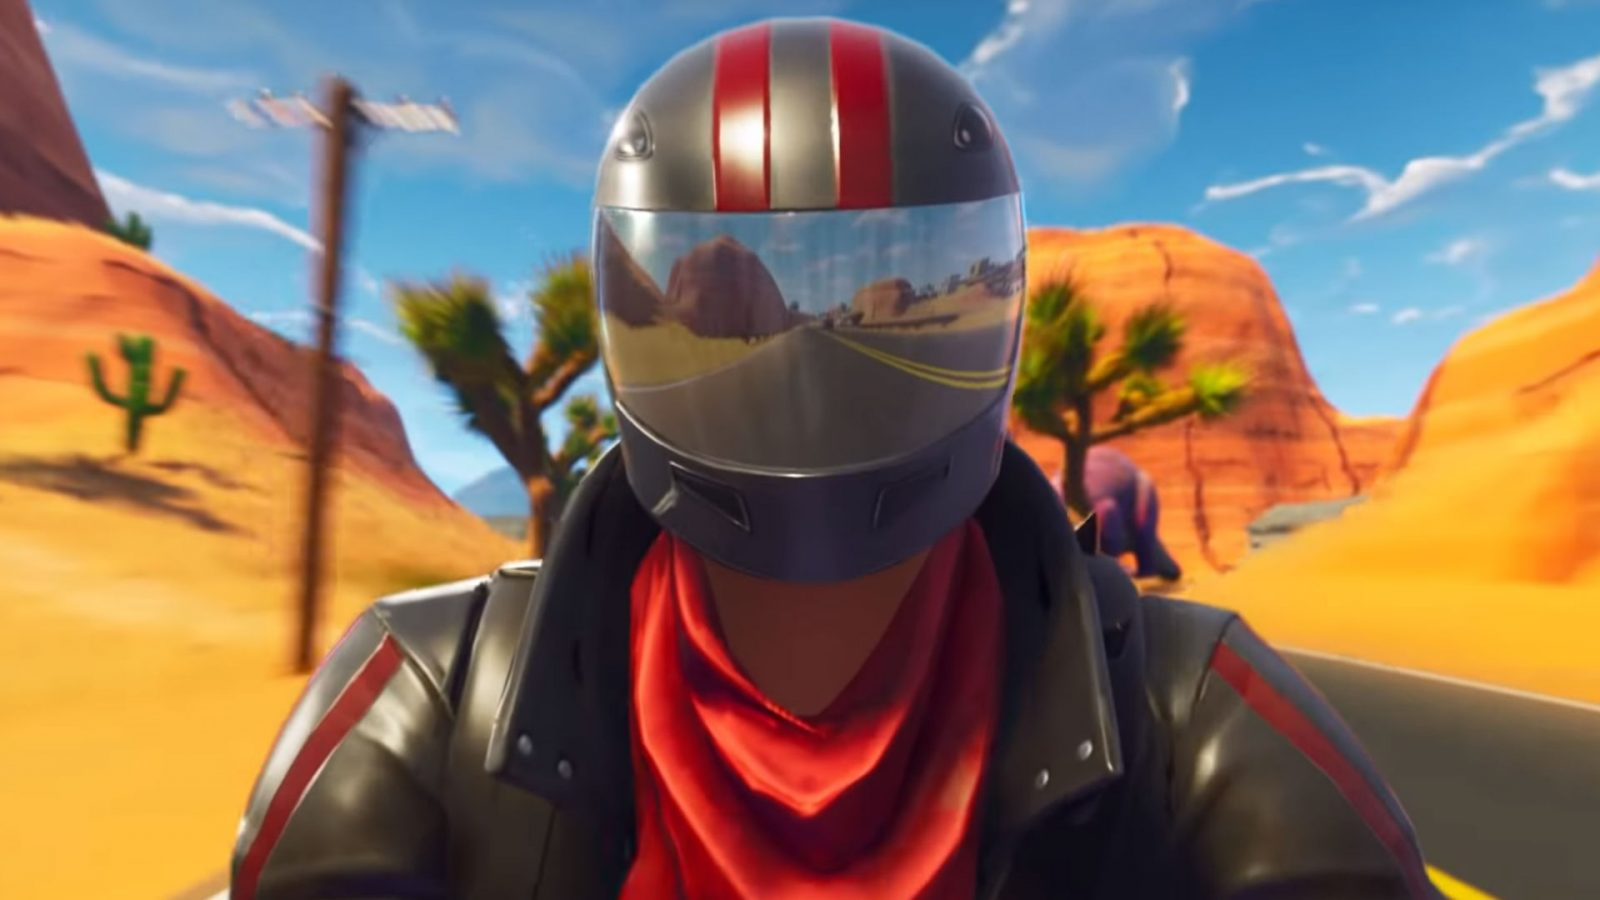 Fortnite Steam: how to get the battle royale game on Valve's client